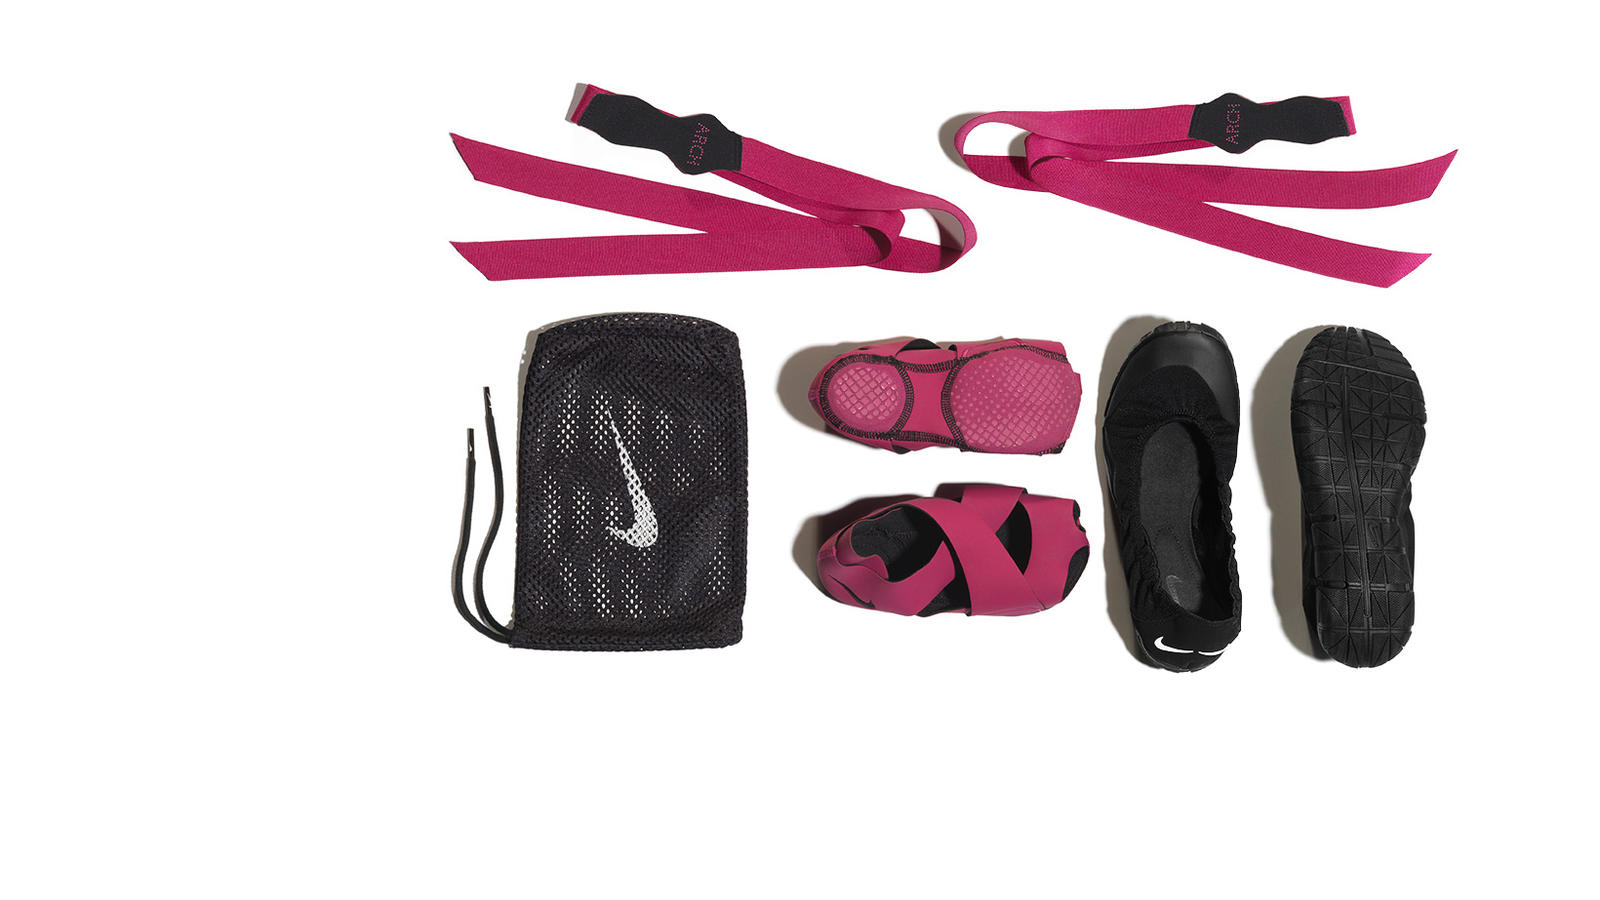 Five shoes in one: the Nike Studio Wrap Nike News